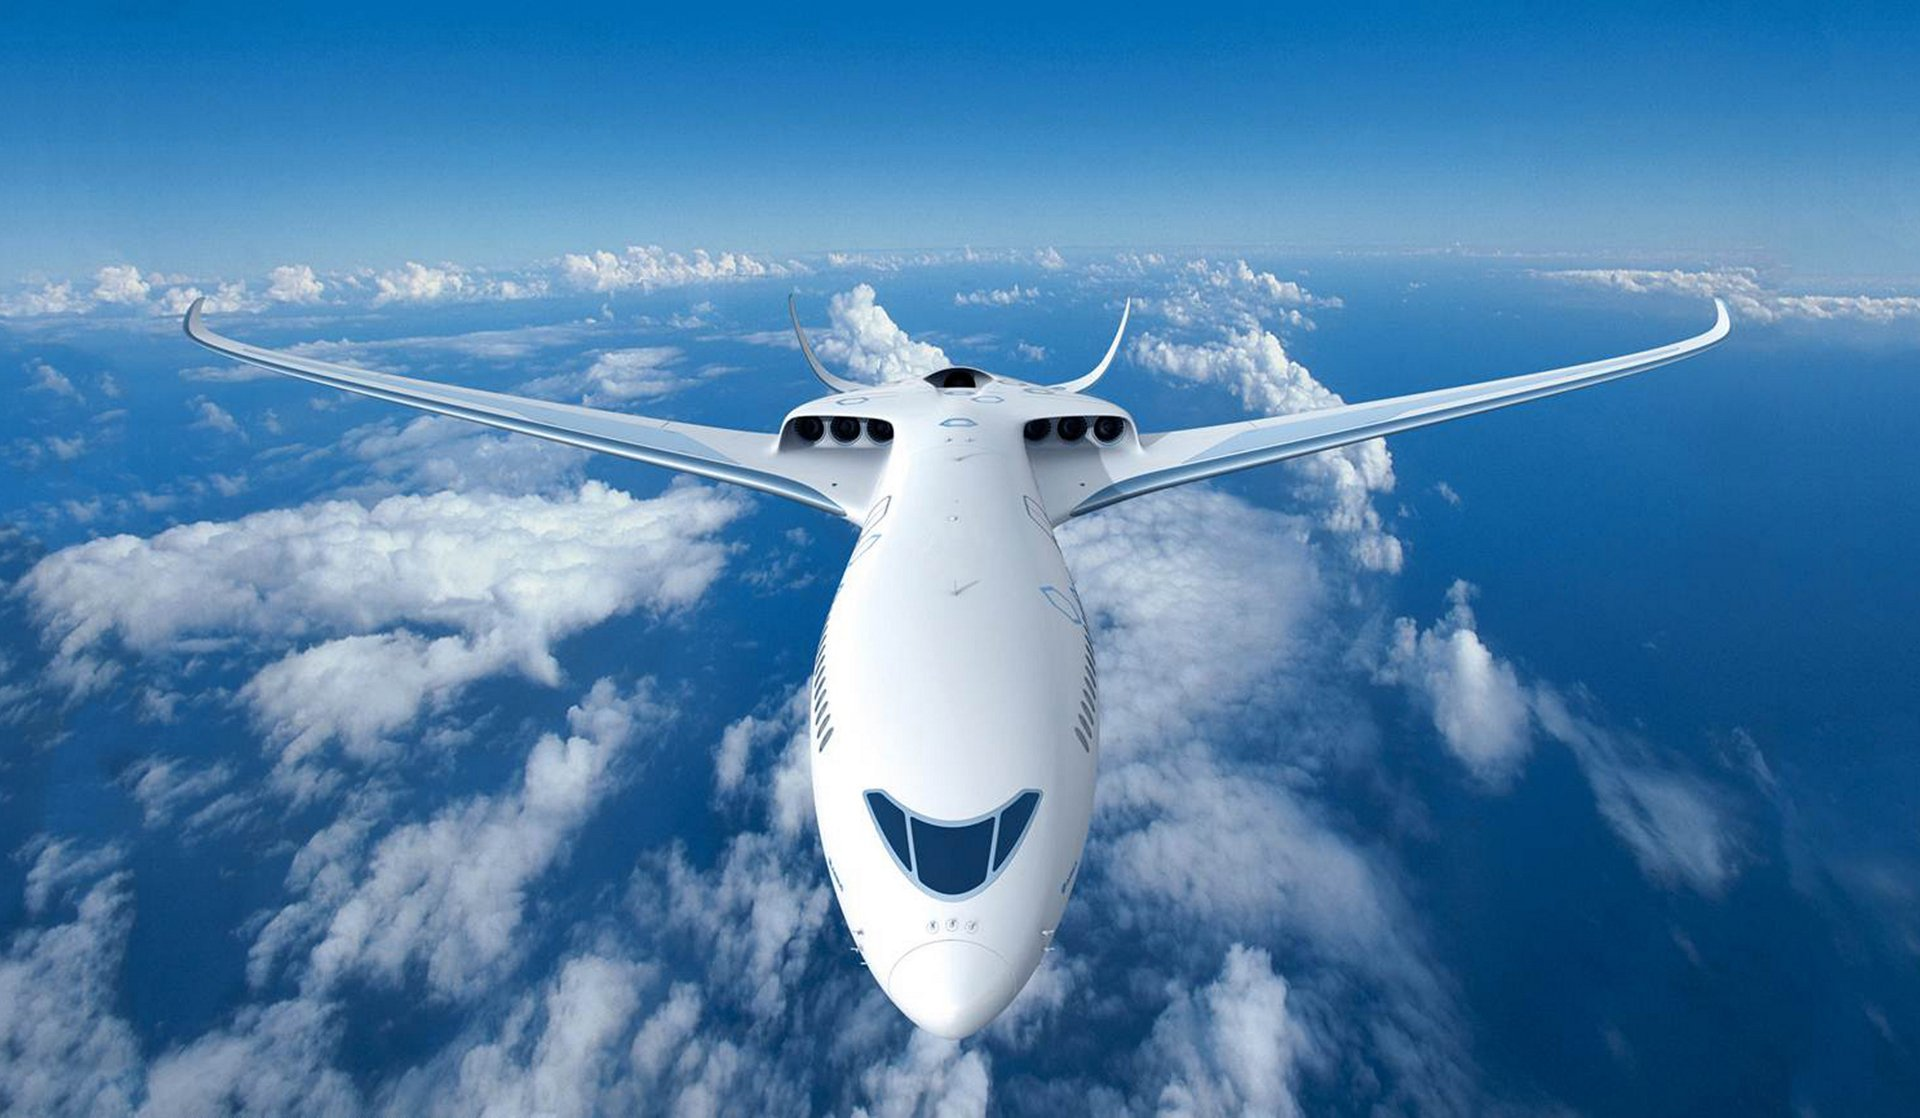 Airbus And Sas Scandinavian Airlines Sign Hybrid And Electric Aircraft Research Agreement Innovation Airbus